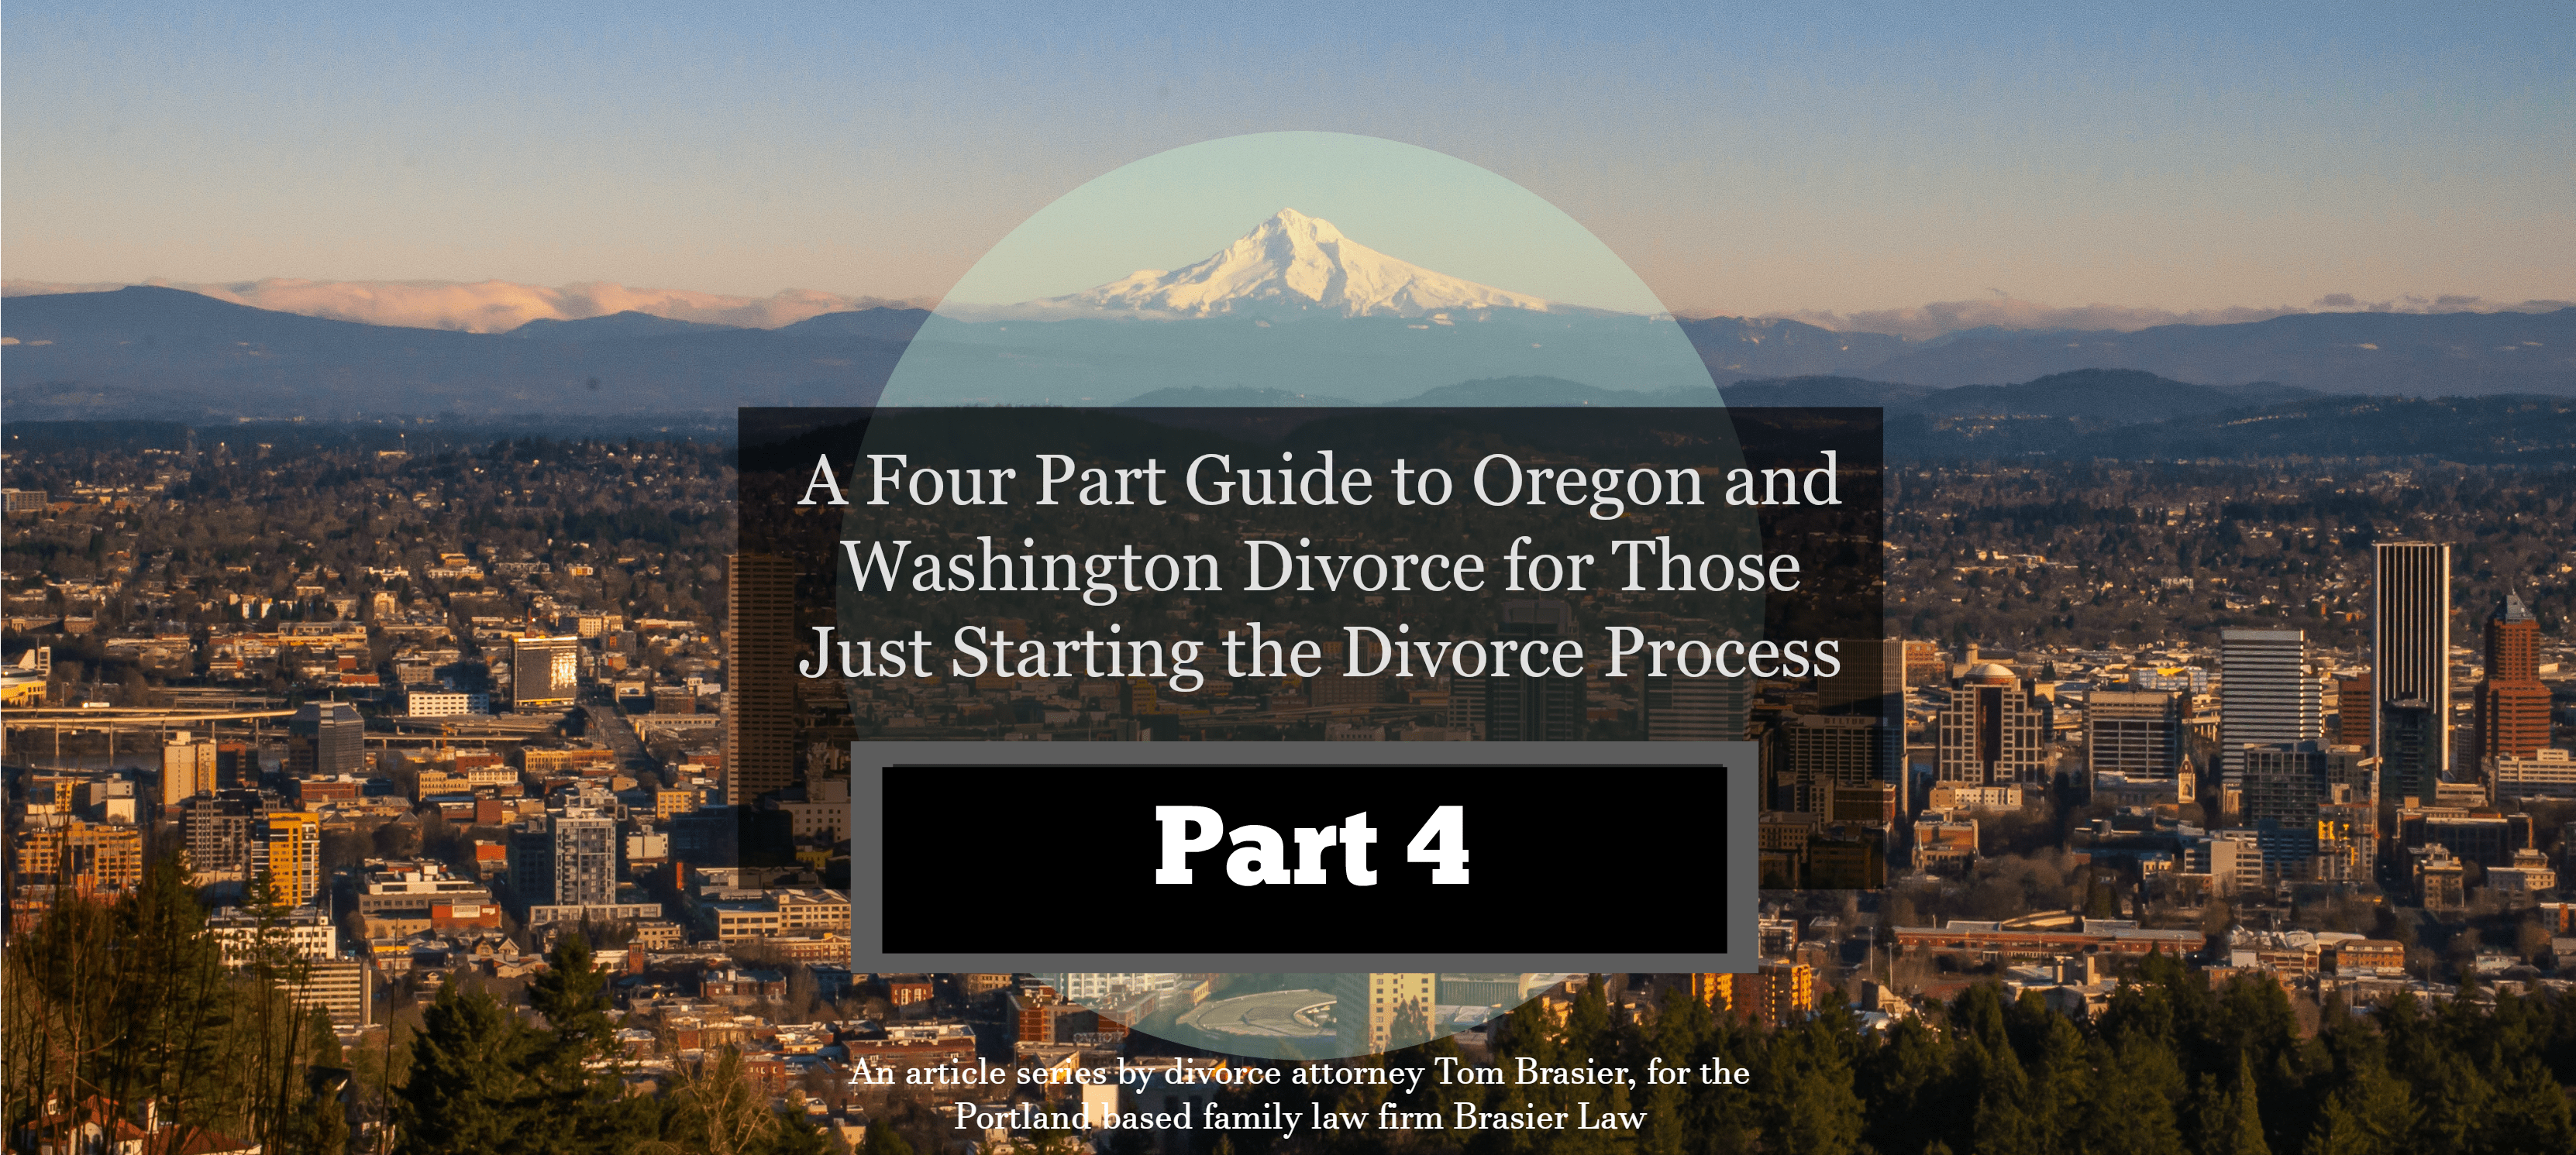 Getting a divorce in Oregon and Washington